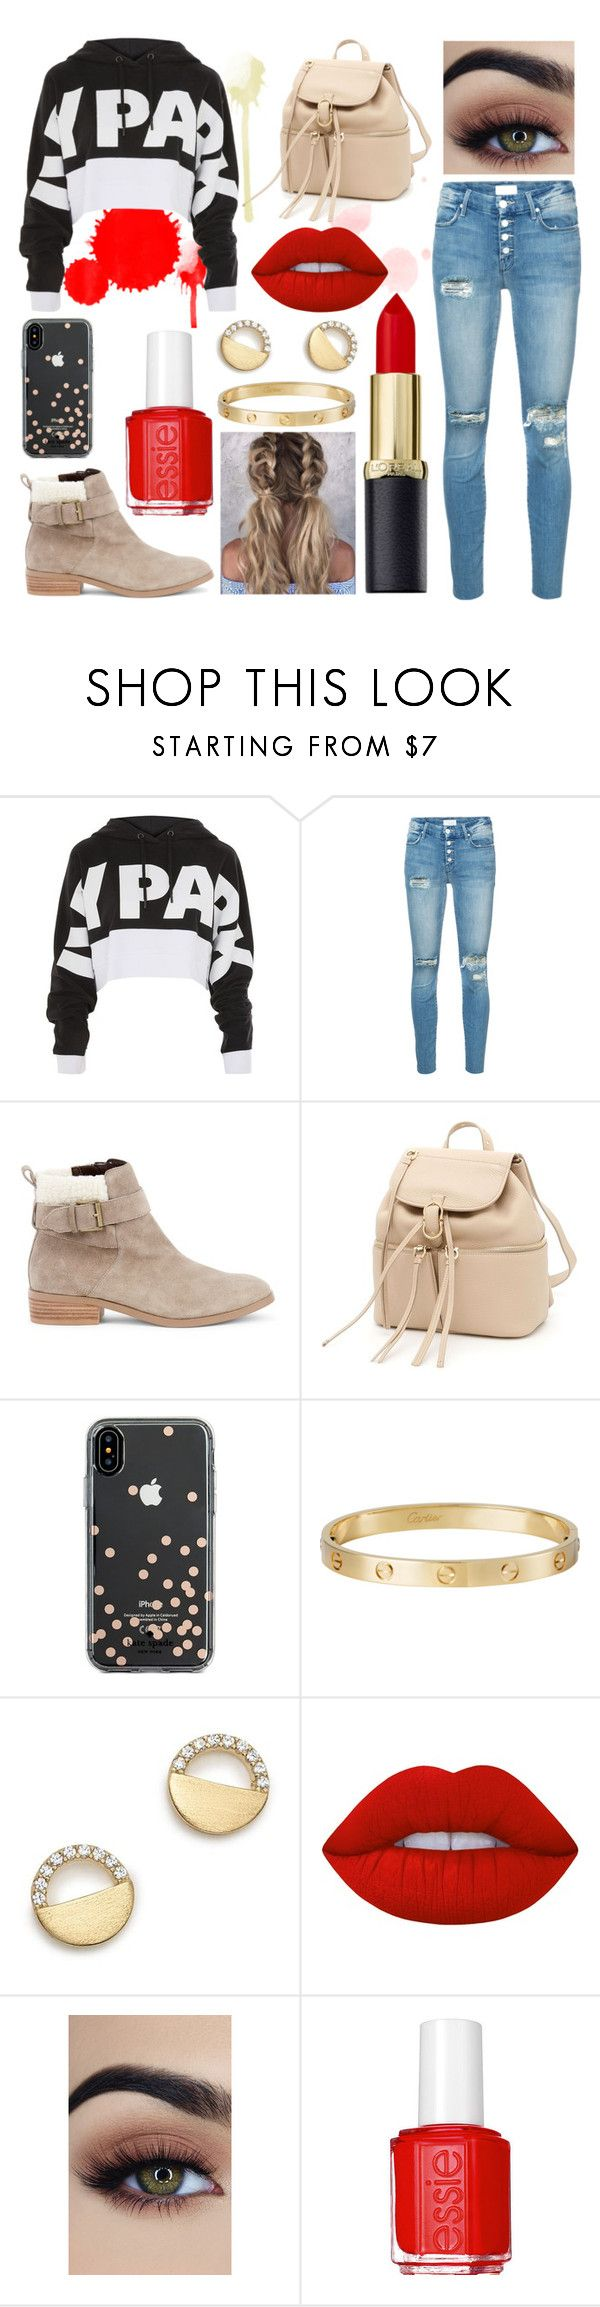 """Outfit #39"" by sarah-gryffindor ❤ liked on Polyvore featuring Topshop, Mother, Sole Society, Salvatore Ferragamo, Kate Spade, Cartier, Bloomingdale's, Lime Crime, Essie and red"